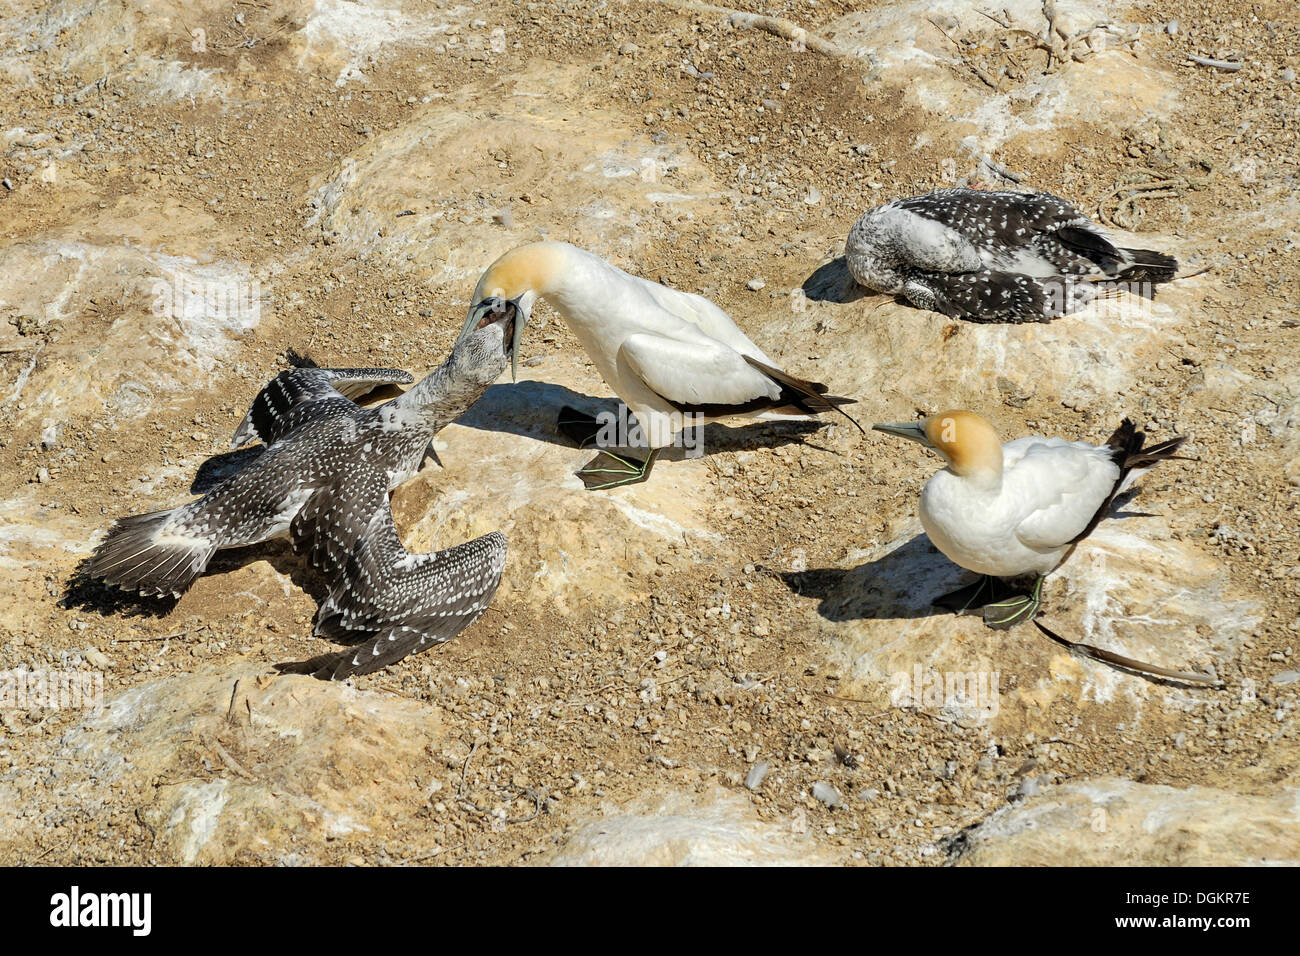 Australasian Gannets (Morus serrator or Sula bassana), young birds being fed by adult birds, Gannet Colony, Takapu Refuge - Stock Image